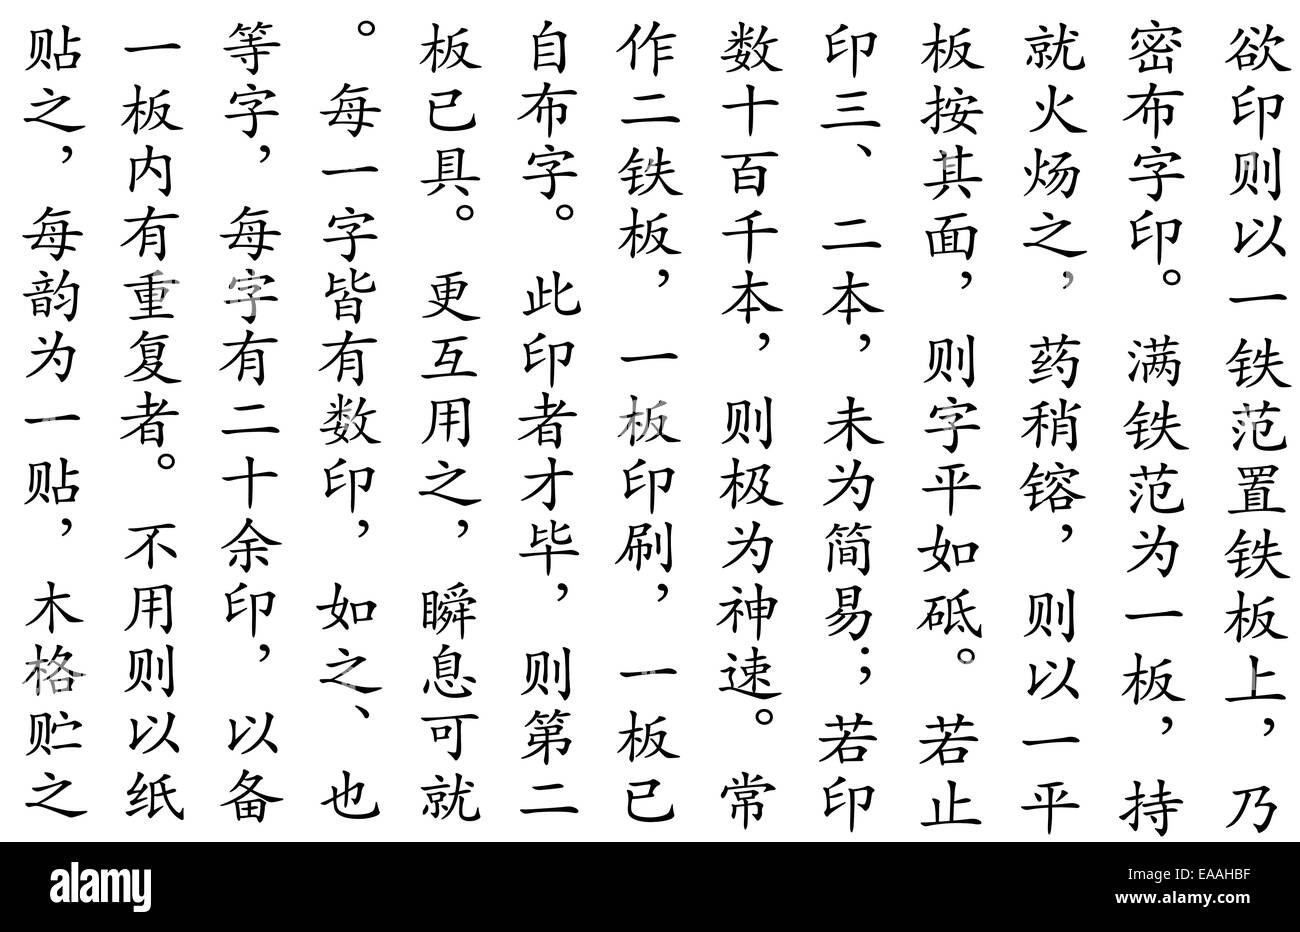 Chinese Writing Letter Black And White Stock Photos Images Alamy